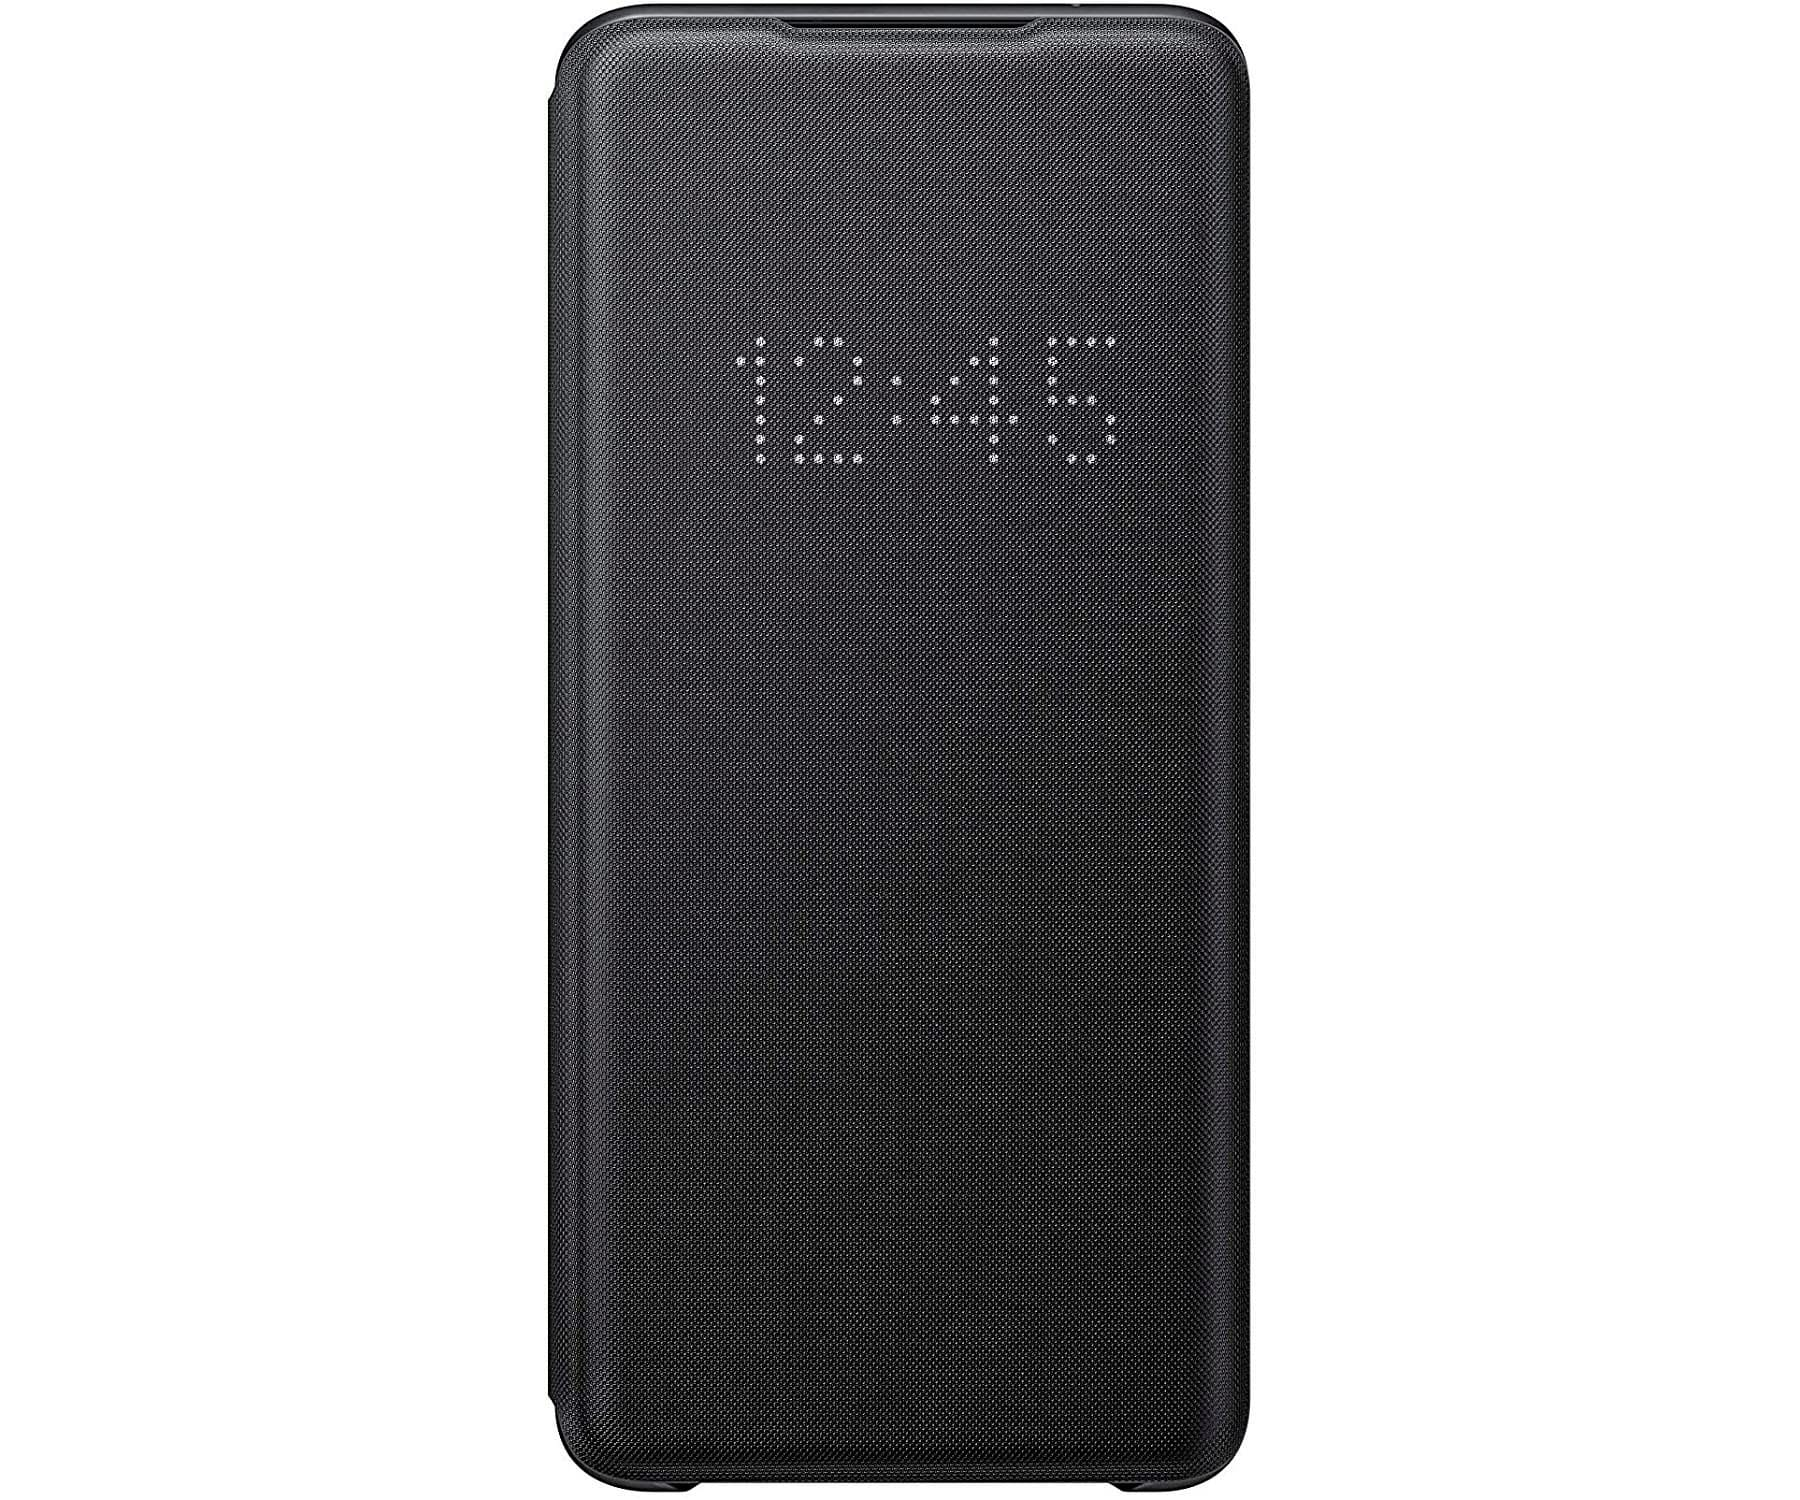 SAMSUNG GALAXY S20 ULTRA LED VIEW COVER NEGRA FUNDA CON TAPA Y LED EN CUBIERTA